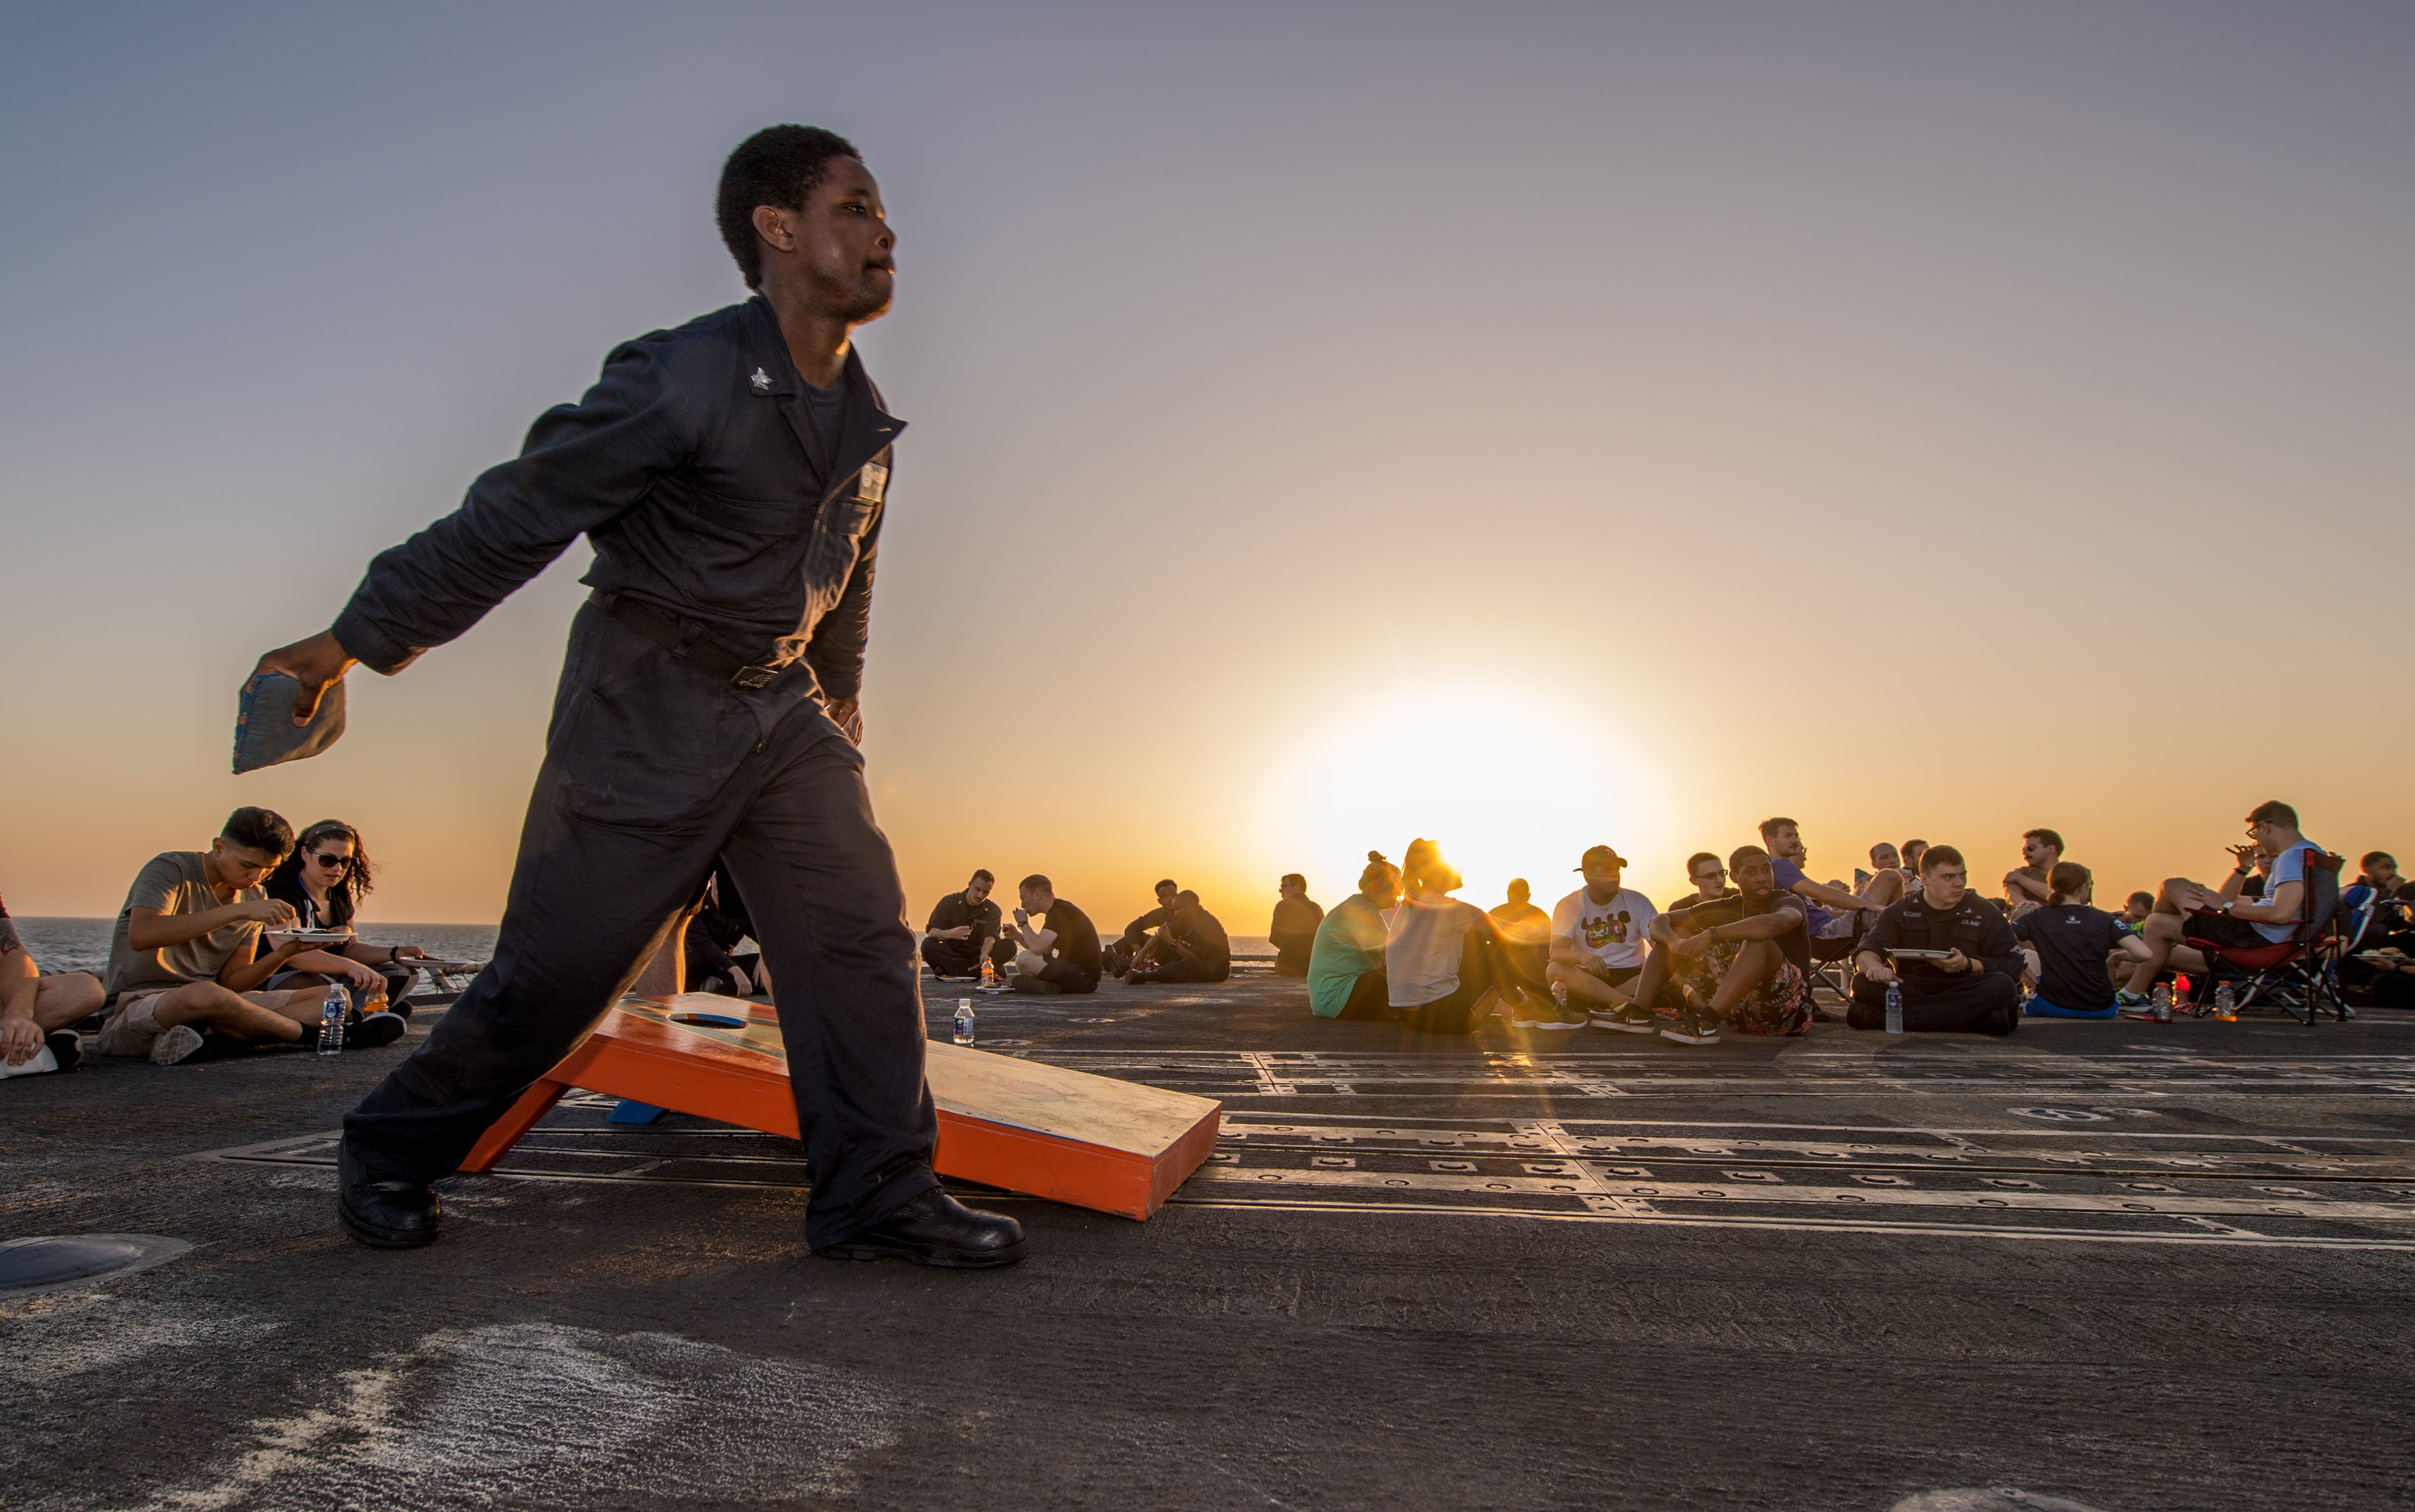 Information Systems Technician 2nd Class Philmore Daley, from Lemoore, Calif., plays cornhole during a steel beach picnic on the flight deck of the Ticonderoga-class guided-missile cruiser USS Princeton (CG 59), Oct. 15, 2017. (Mass Communication Specialist 3rd Class Kelsey J. Hockenberger/Navy)